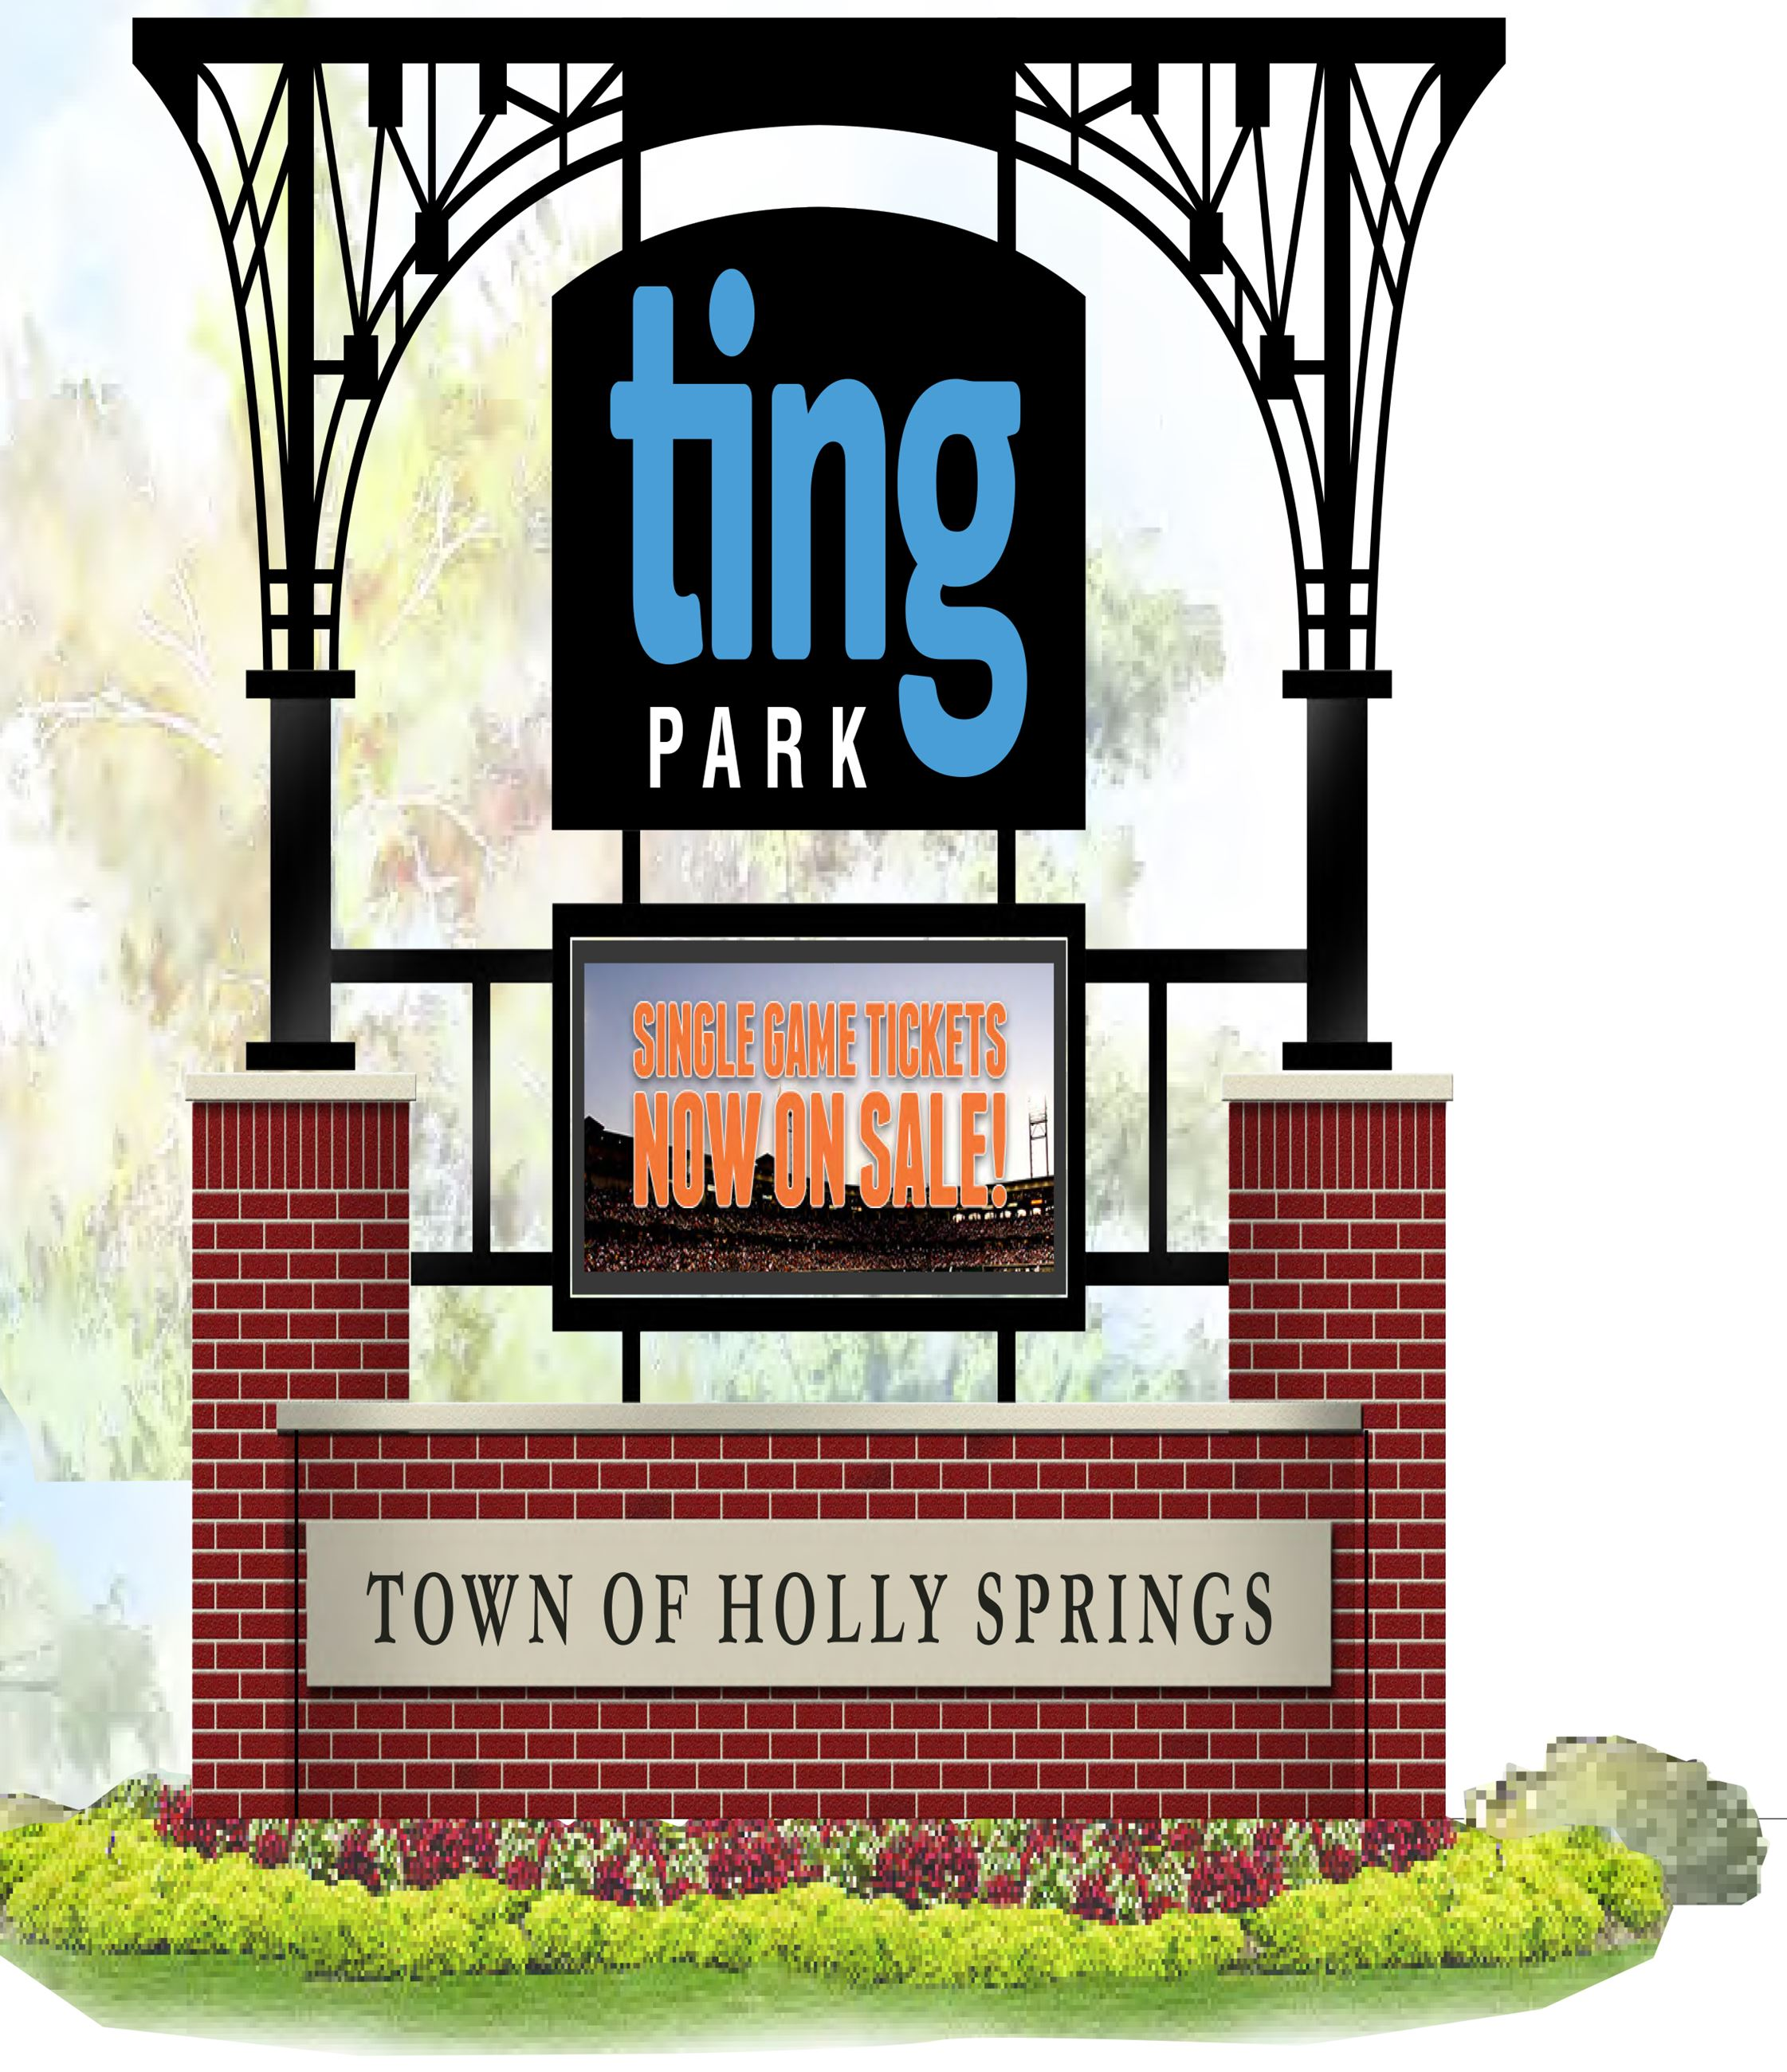 Ting Park Entrance Sign